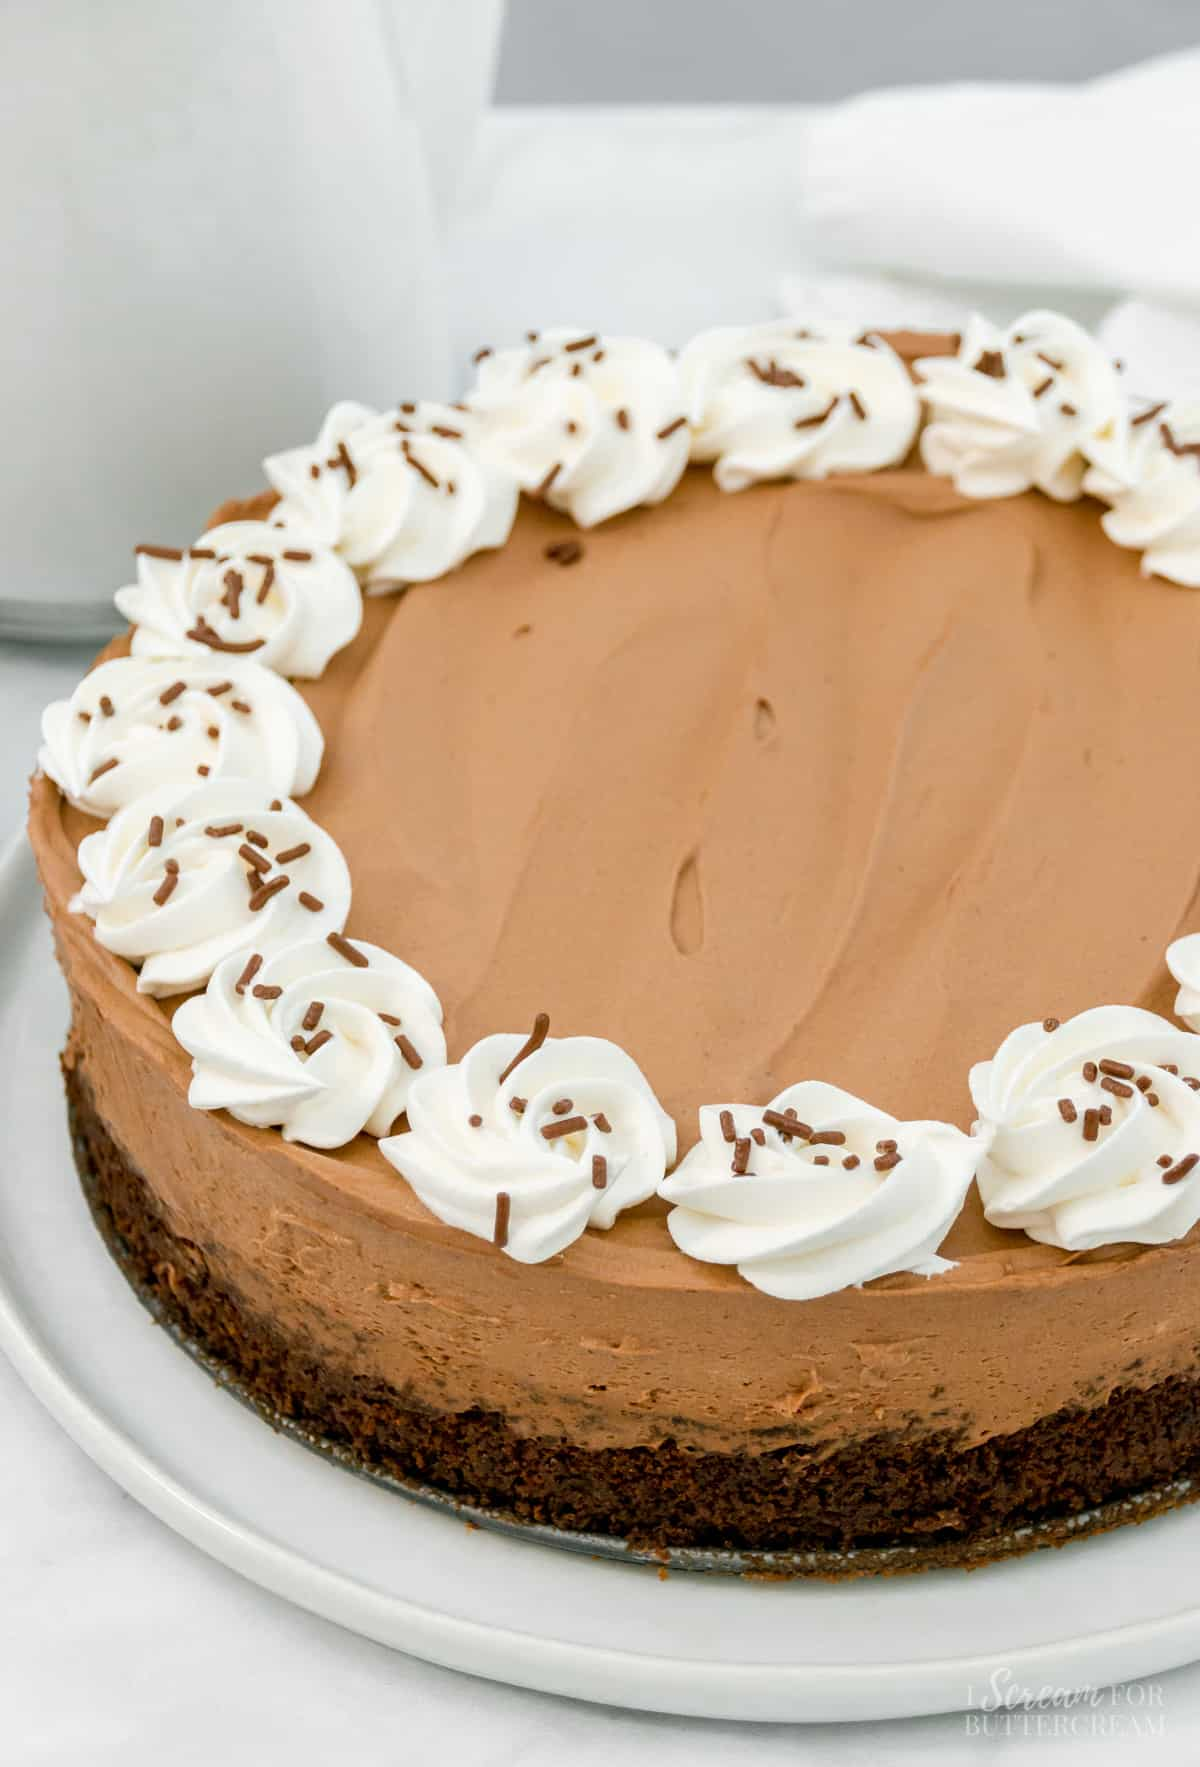 top view of chocolate cake with whipped cream